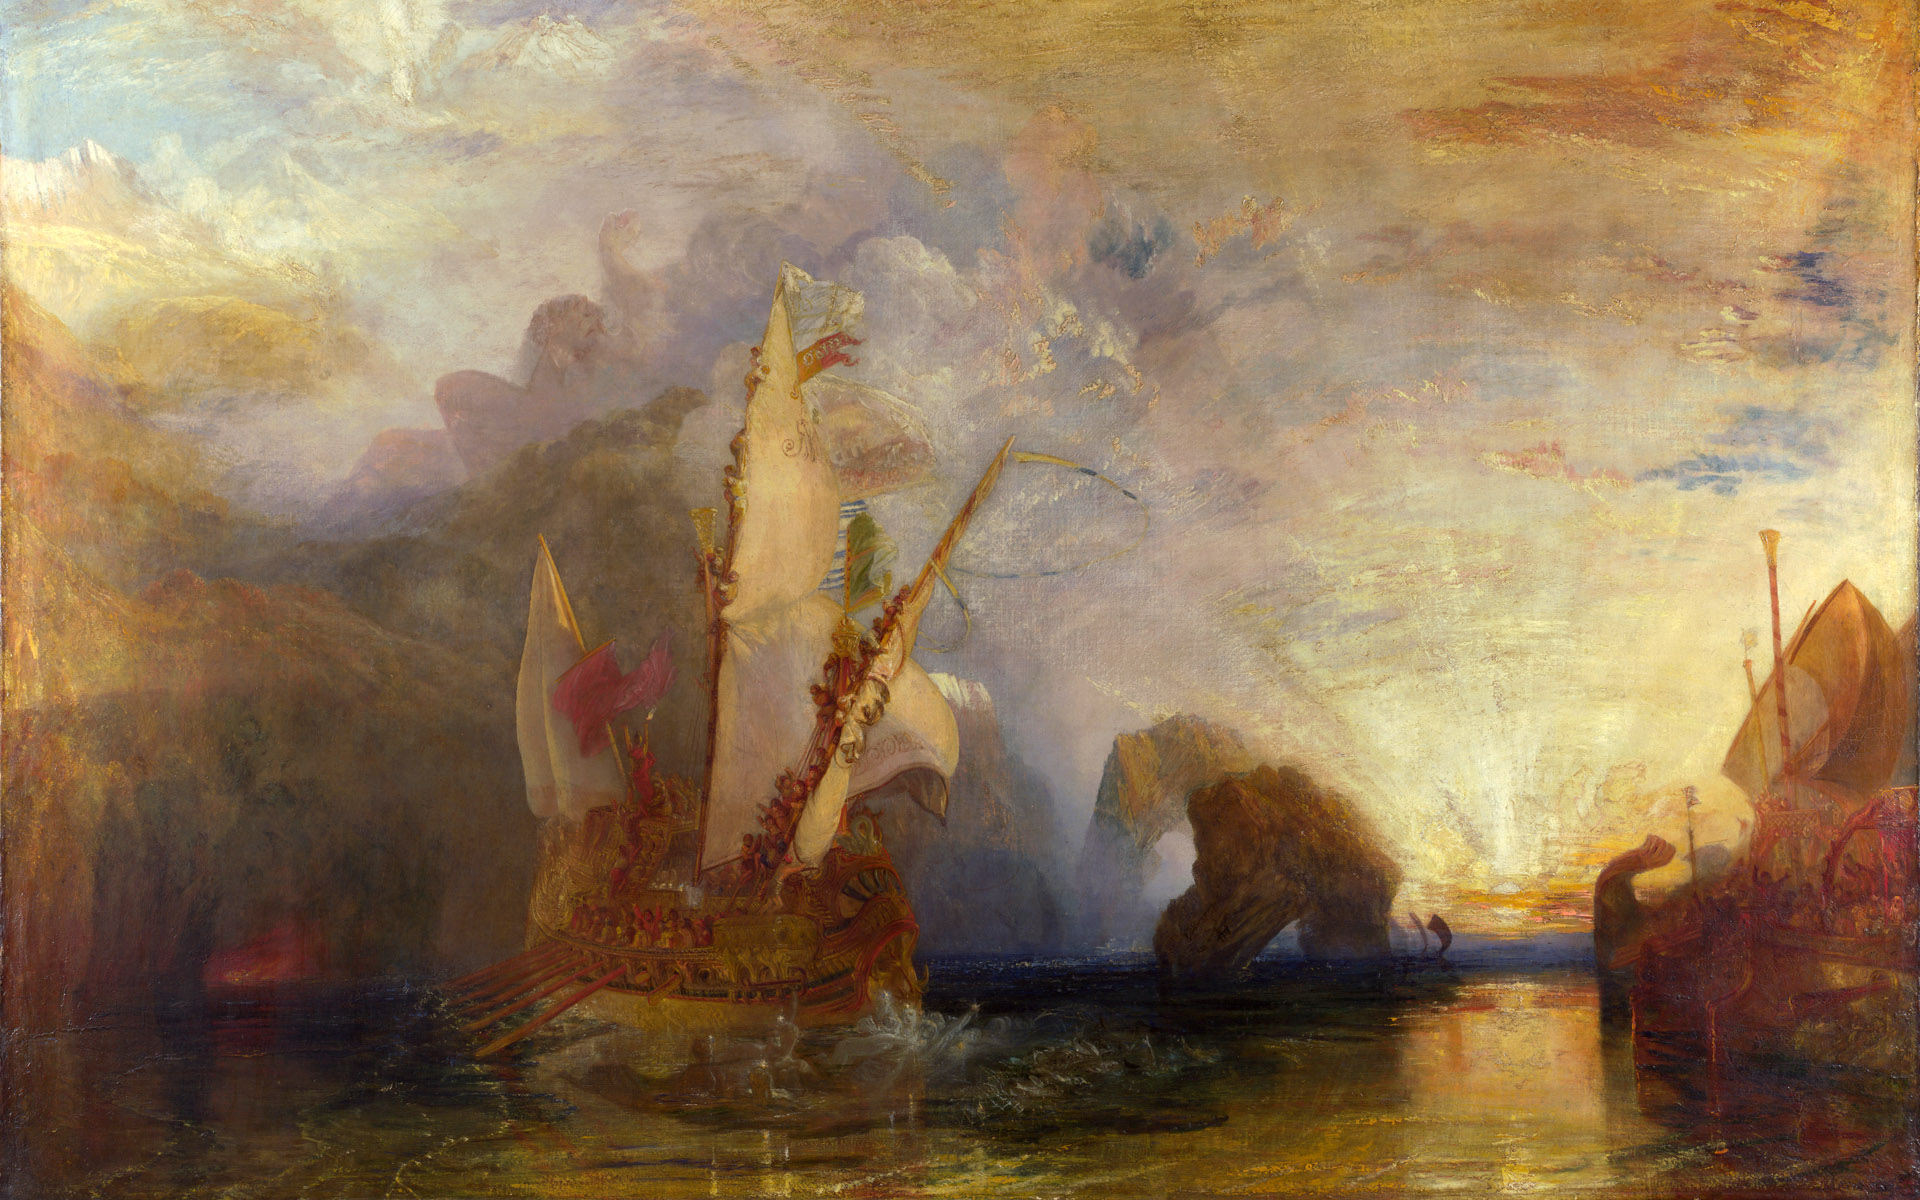 https://upload.wikimedia.org/wikipedia/commons/0/07/Joseph_Mallord_William_Turner_064.jpg